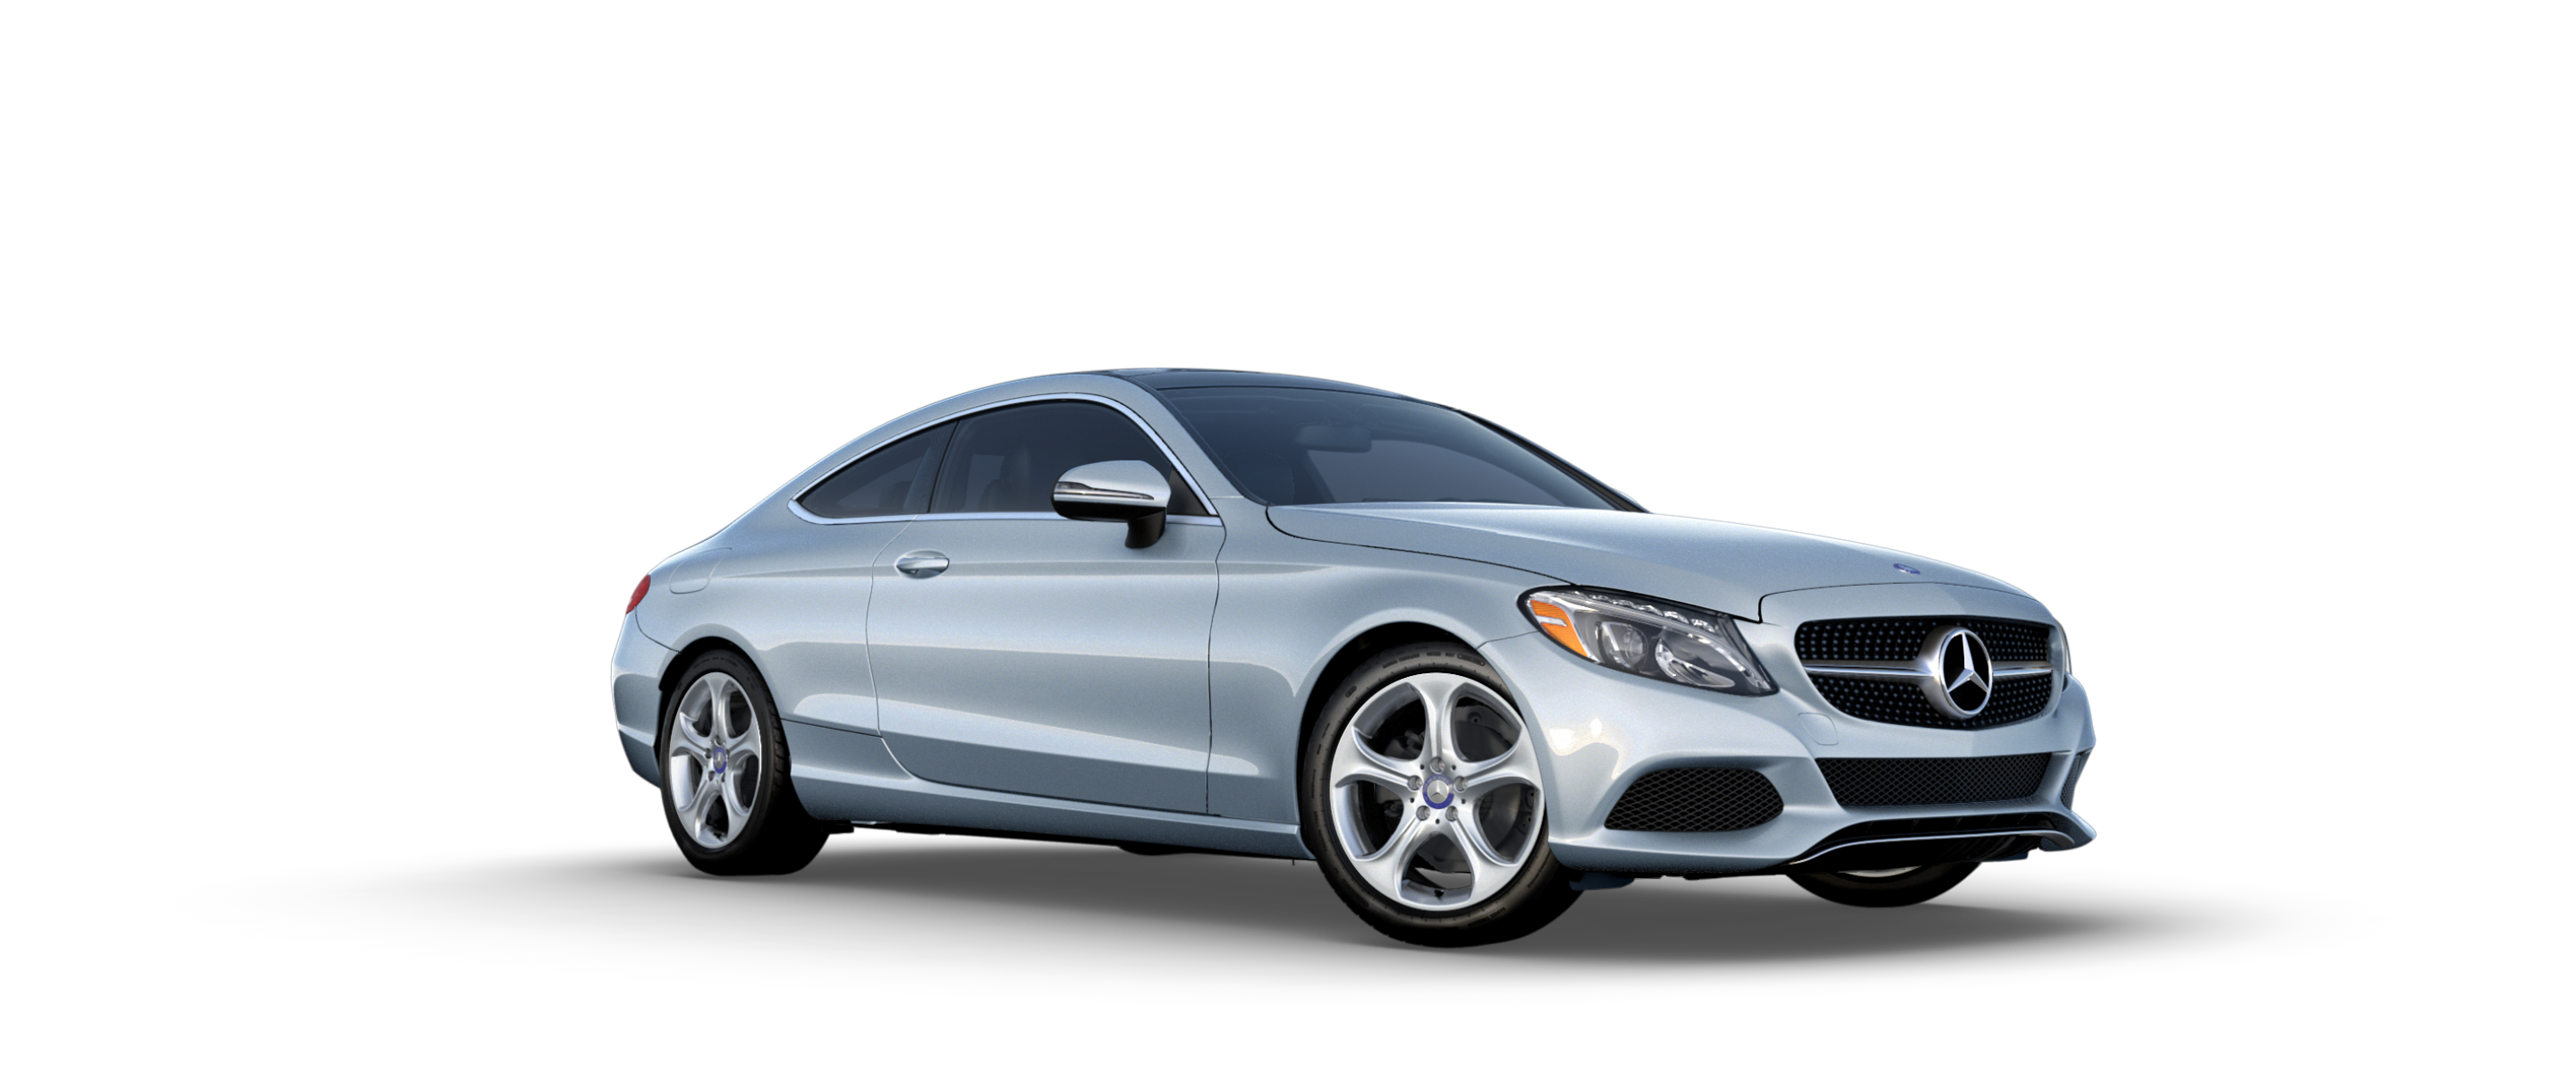 2017 mercedes benz c class exterior color options